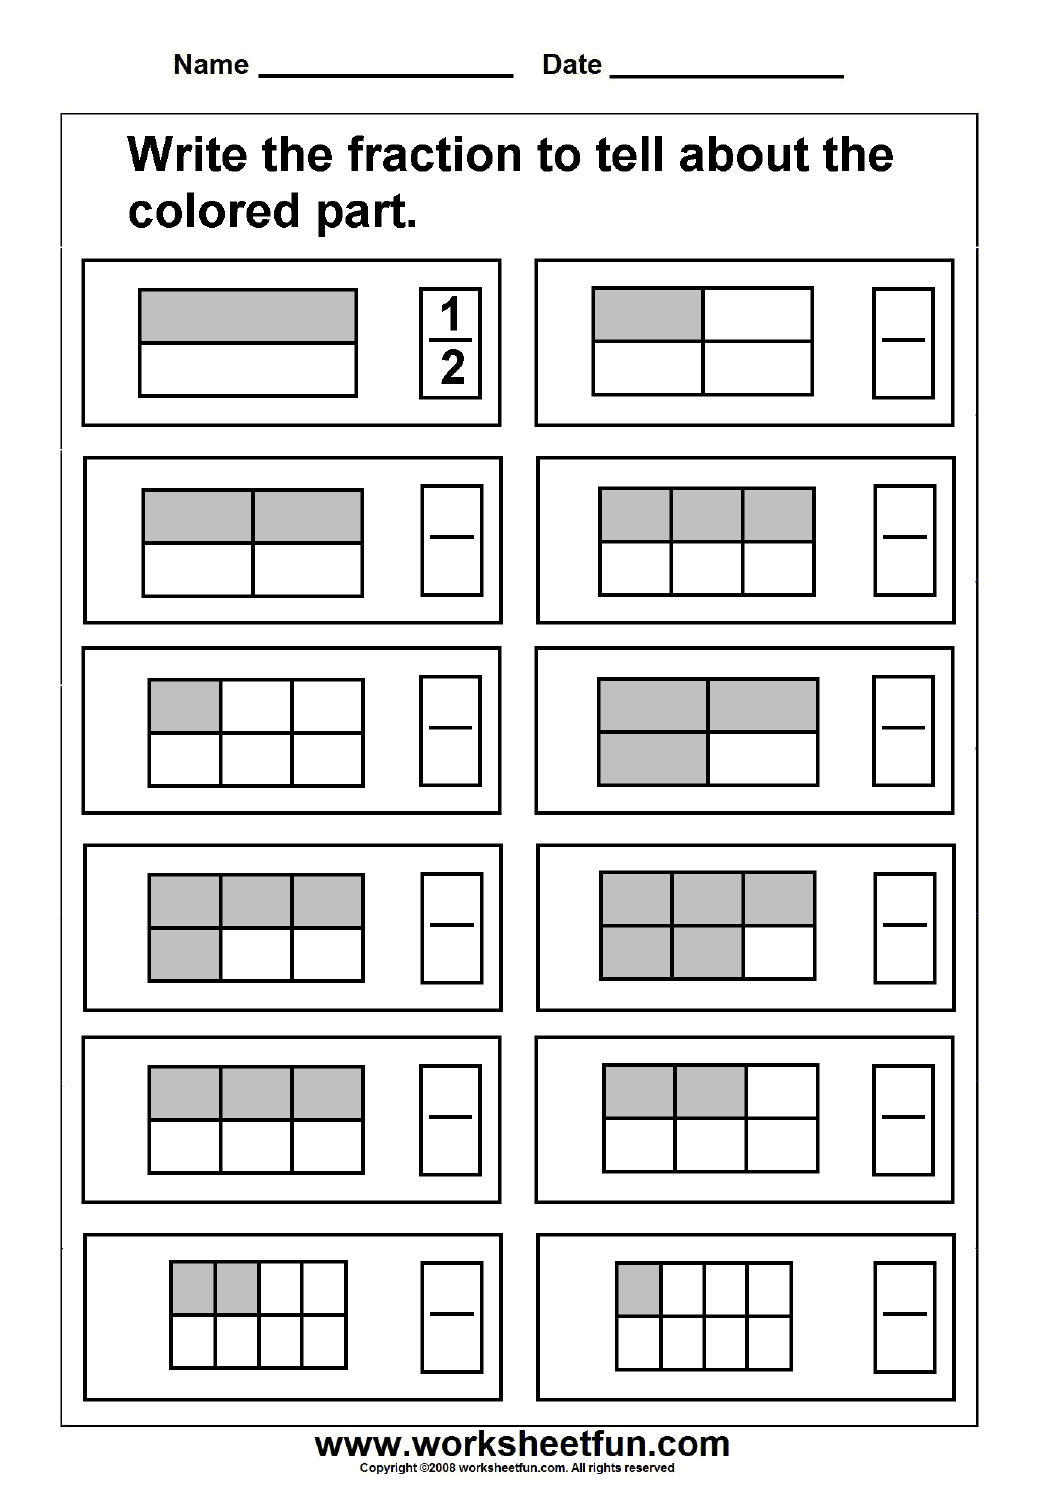 Fraction FREE Printable Worksheets Worksheetfun – Fraction Worksheets for 1st Grade